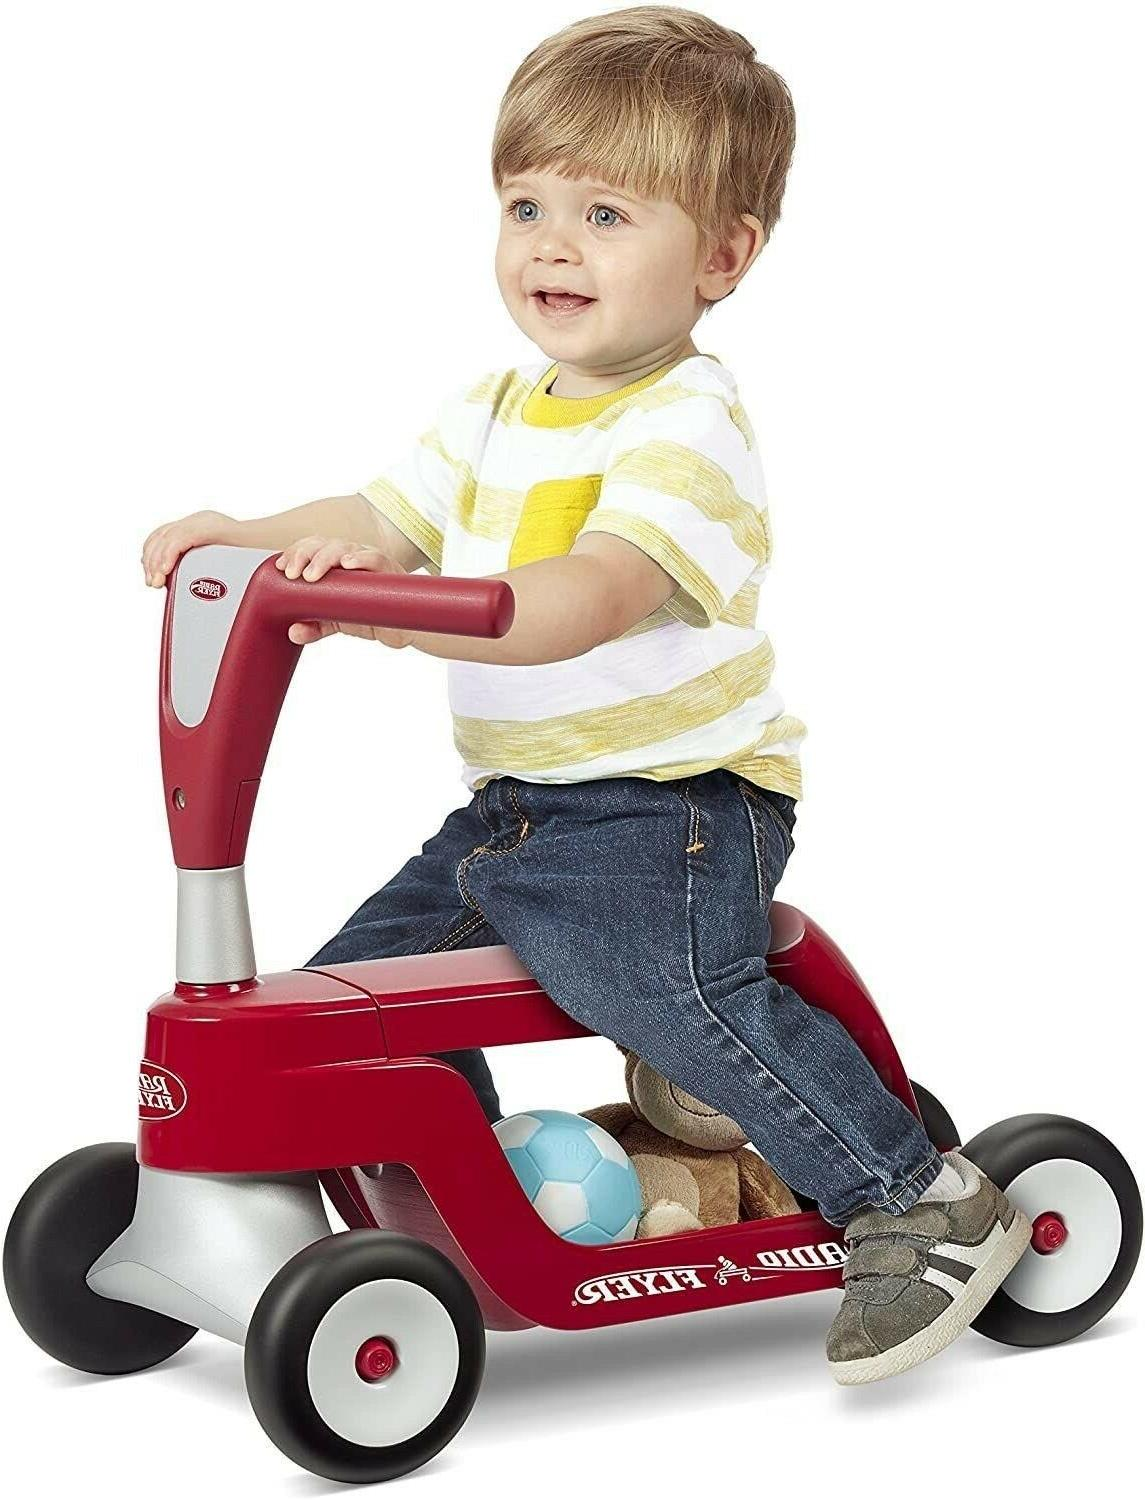 Radio Flyer Scooter, Toddler Ride on, Model: 615S